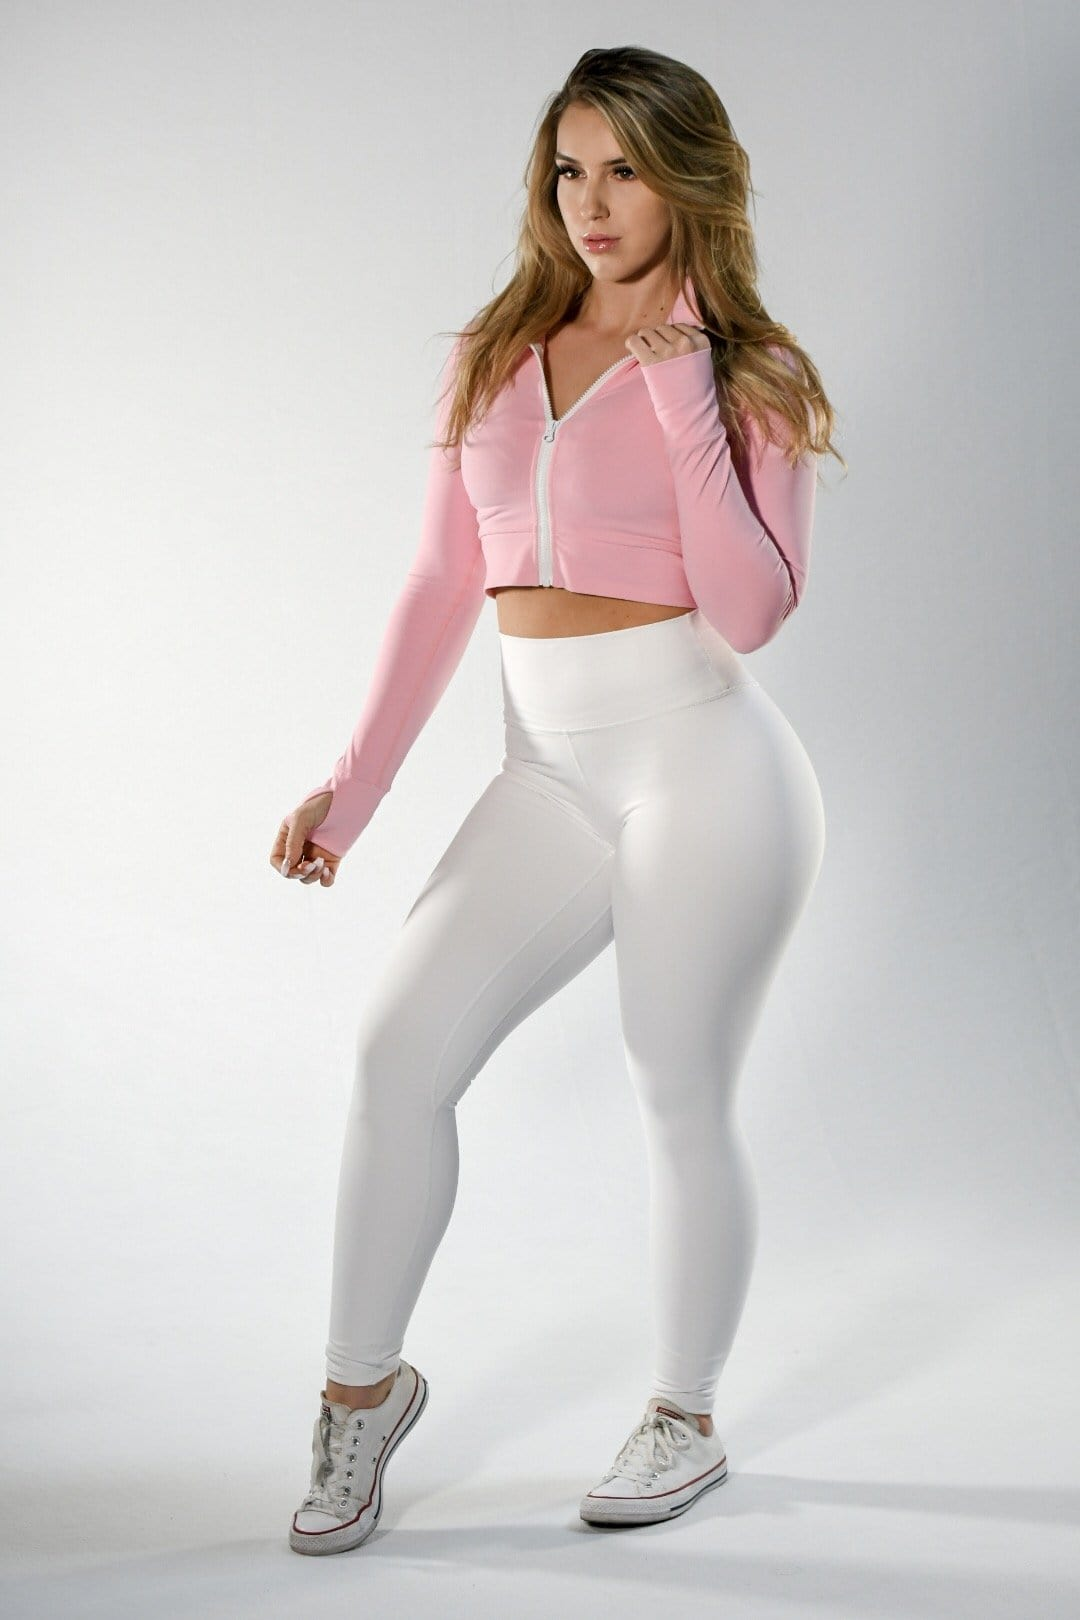 Resilient Scrunch Leggings- White dual layer